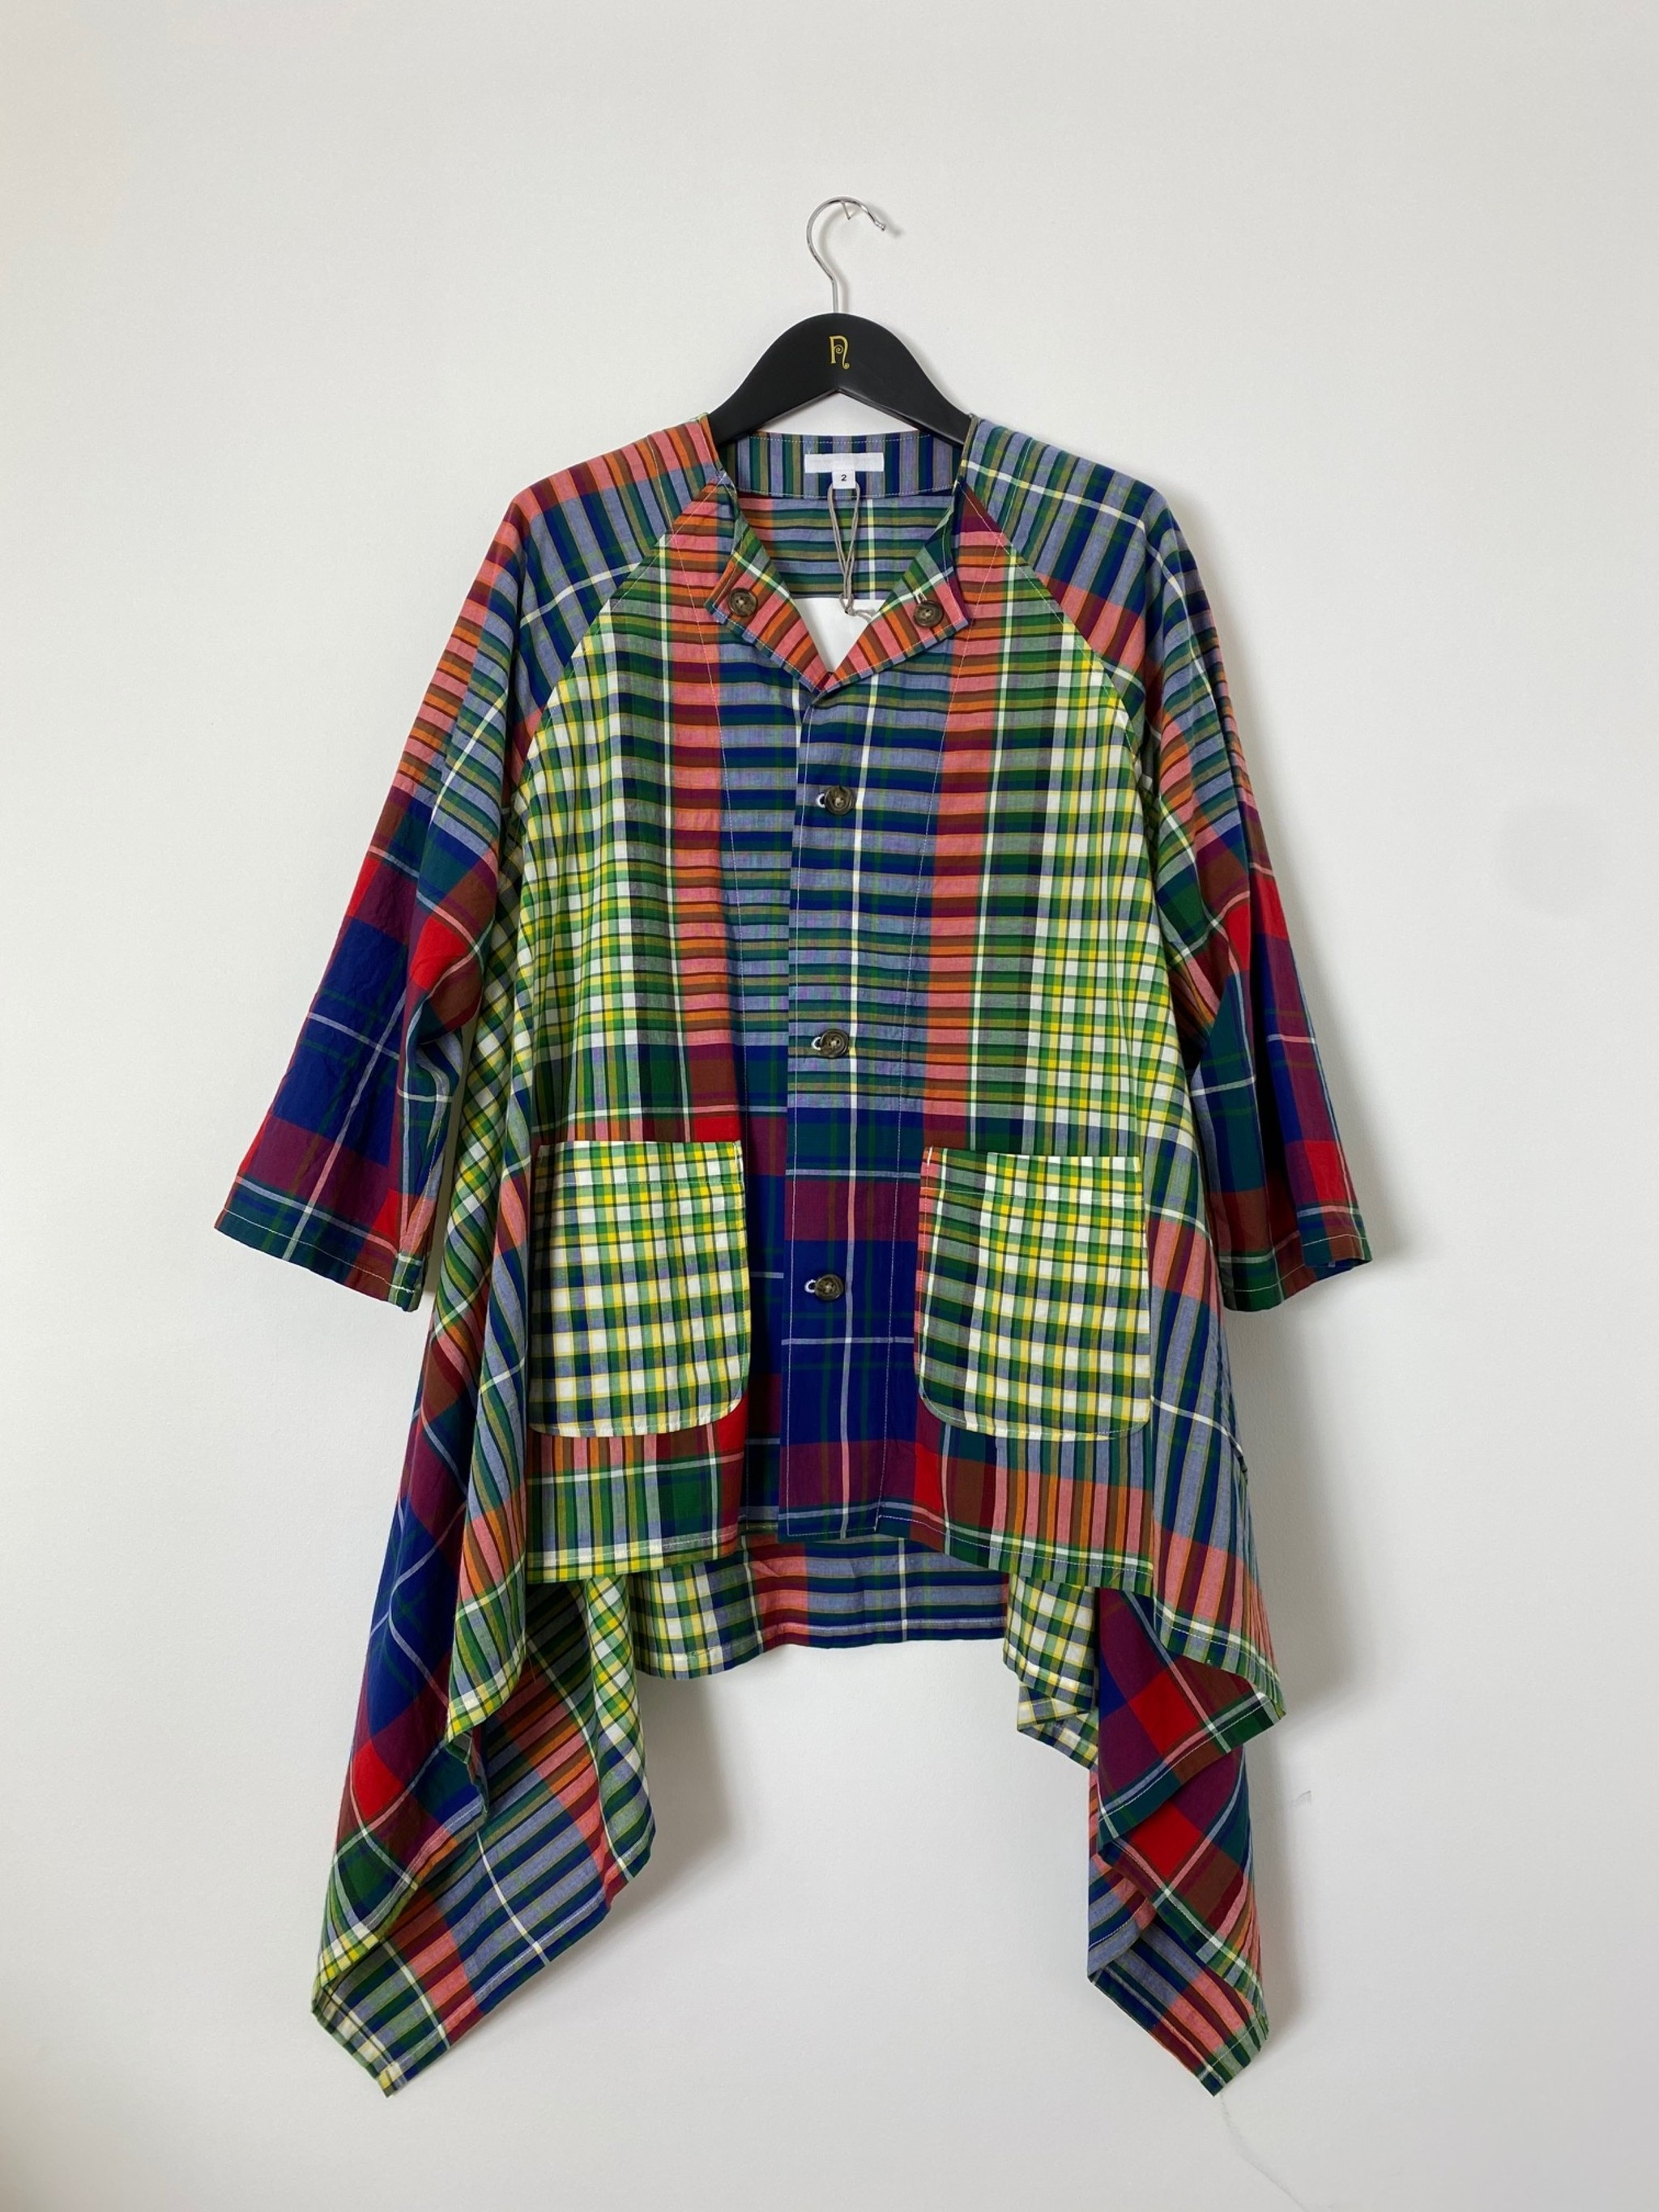 No Collar Raglan - Red/Blue/Green Big Madras Plaid 2